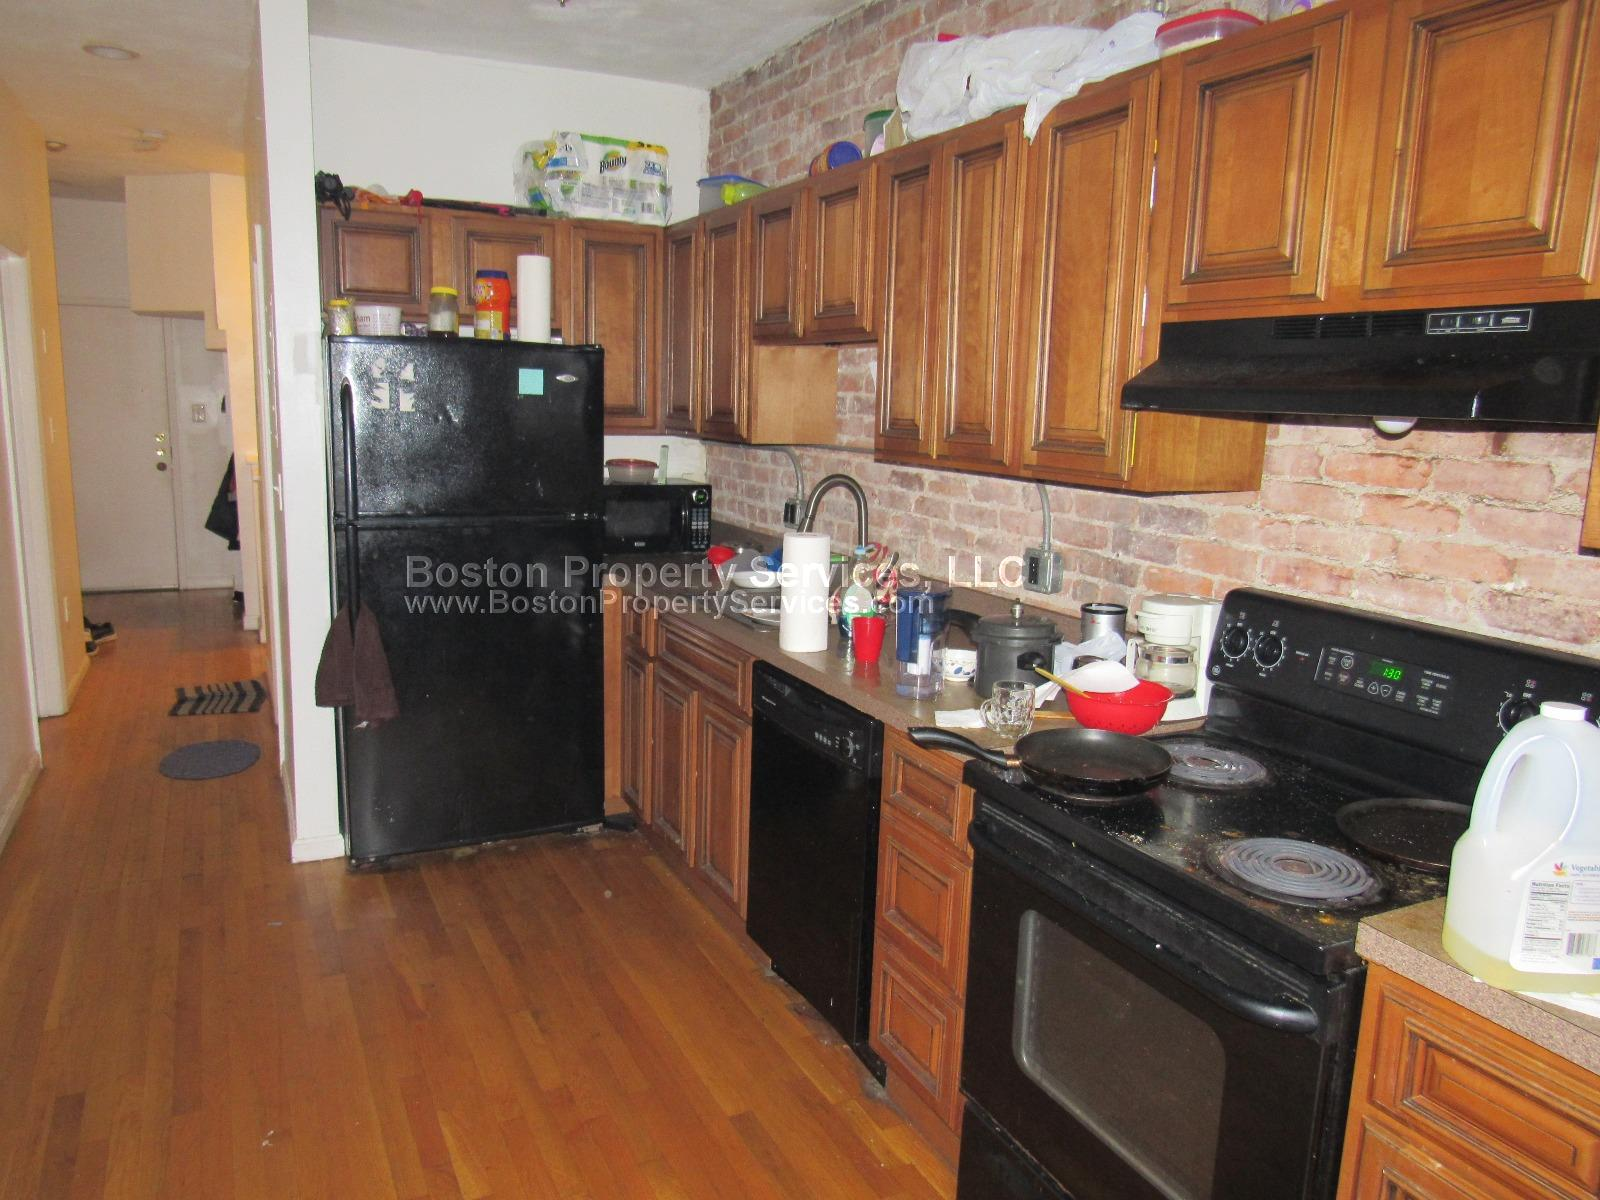 Huge 3 bedroom duplex apartment available on South Huntington Avenue